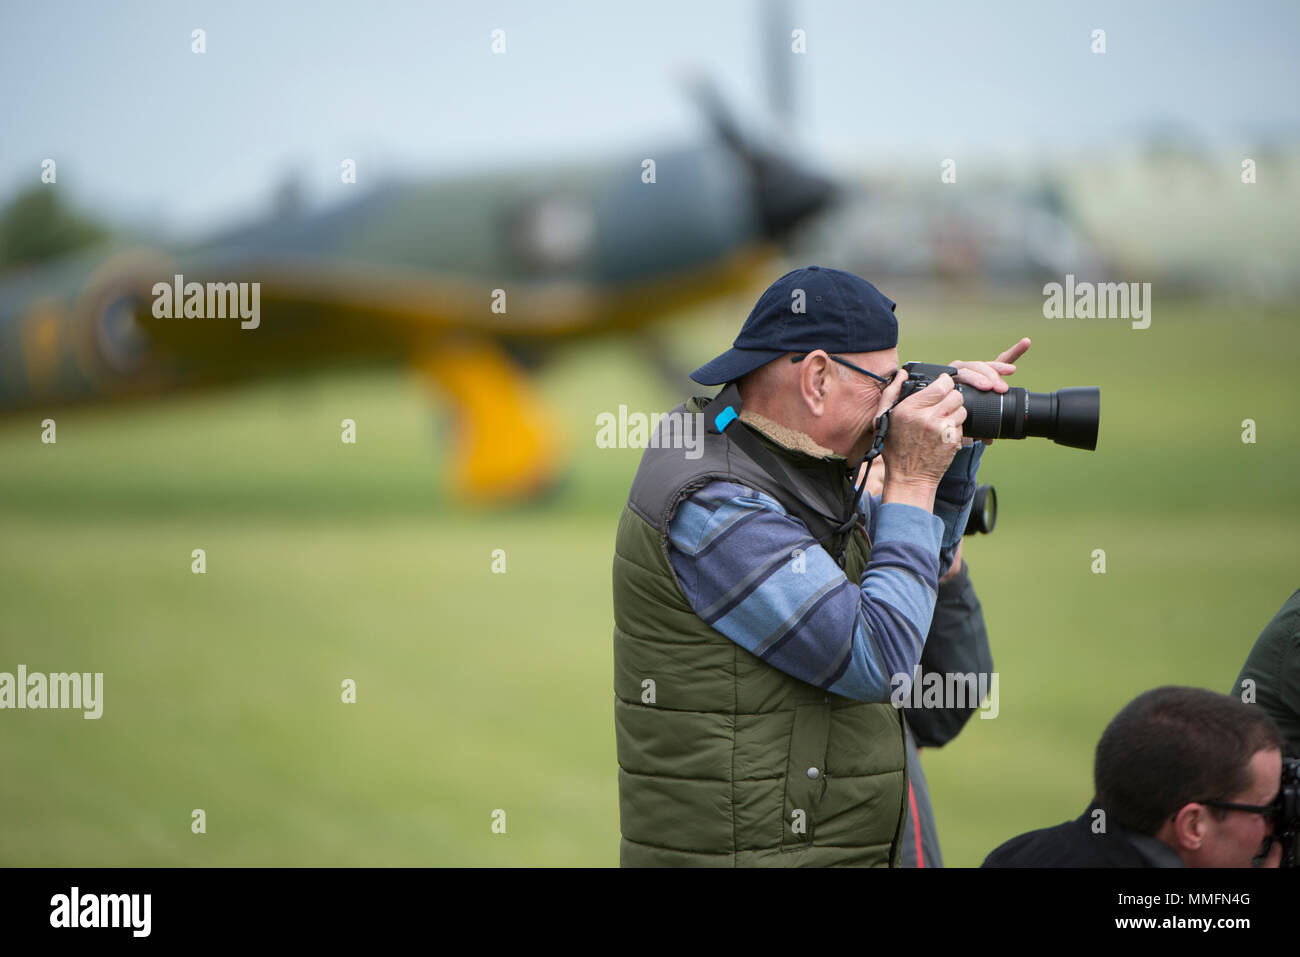 IWM Duxford, Cambridgeshire, UK. 11 May, 2018. Entry level photographers and enthusiasts get to grips with aviation photography on the Airfield at IWM Duxford complete with classic British fighter aircraft for Best of British day. Credit: Malcolm Park/Alamy Live News. - Stock Image